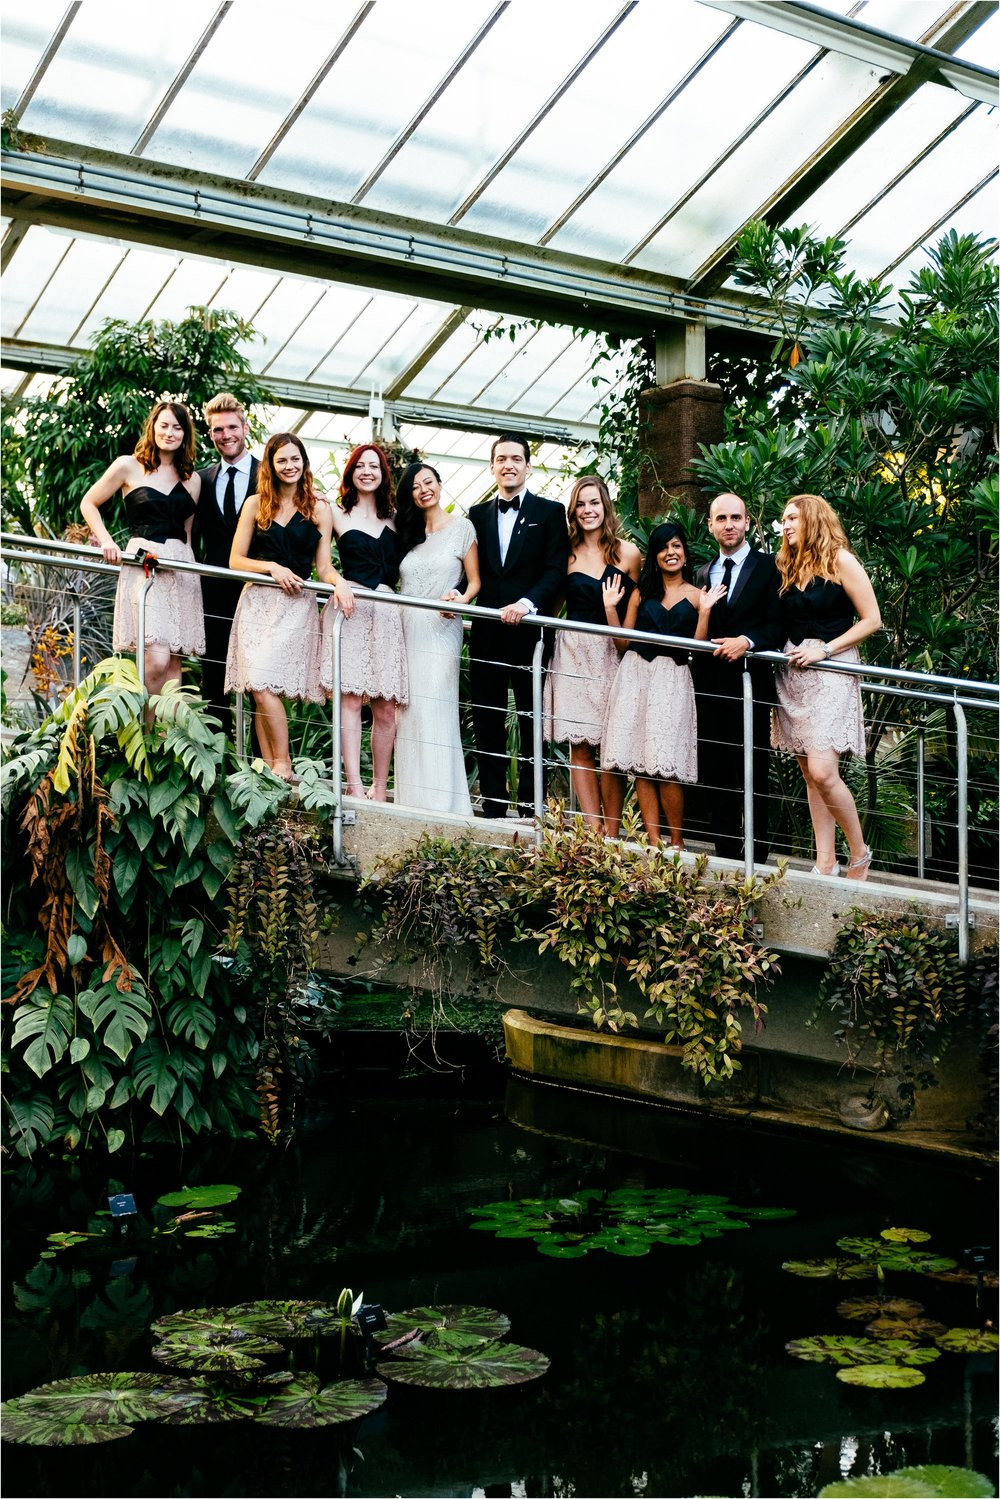 Kew Garden wedding photographer_0221.jpg